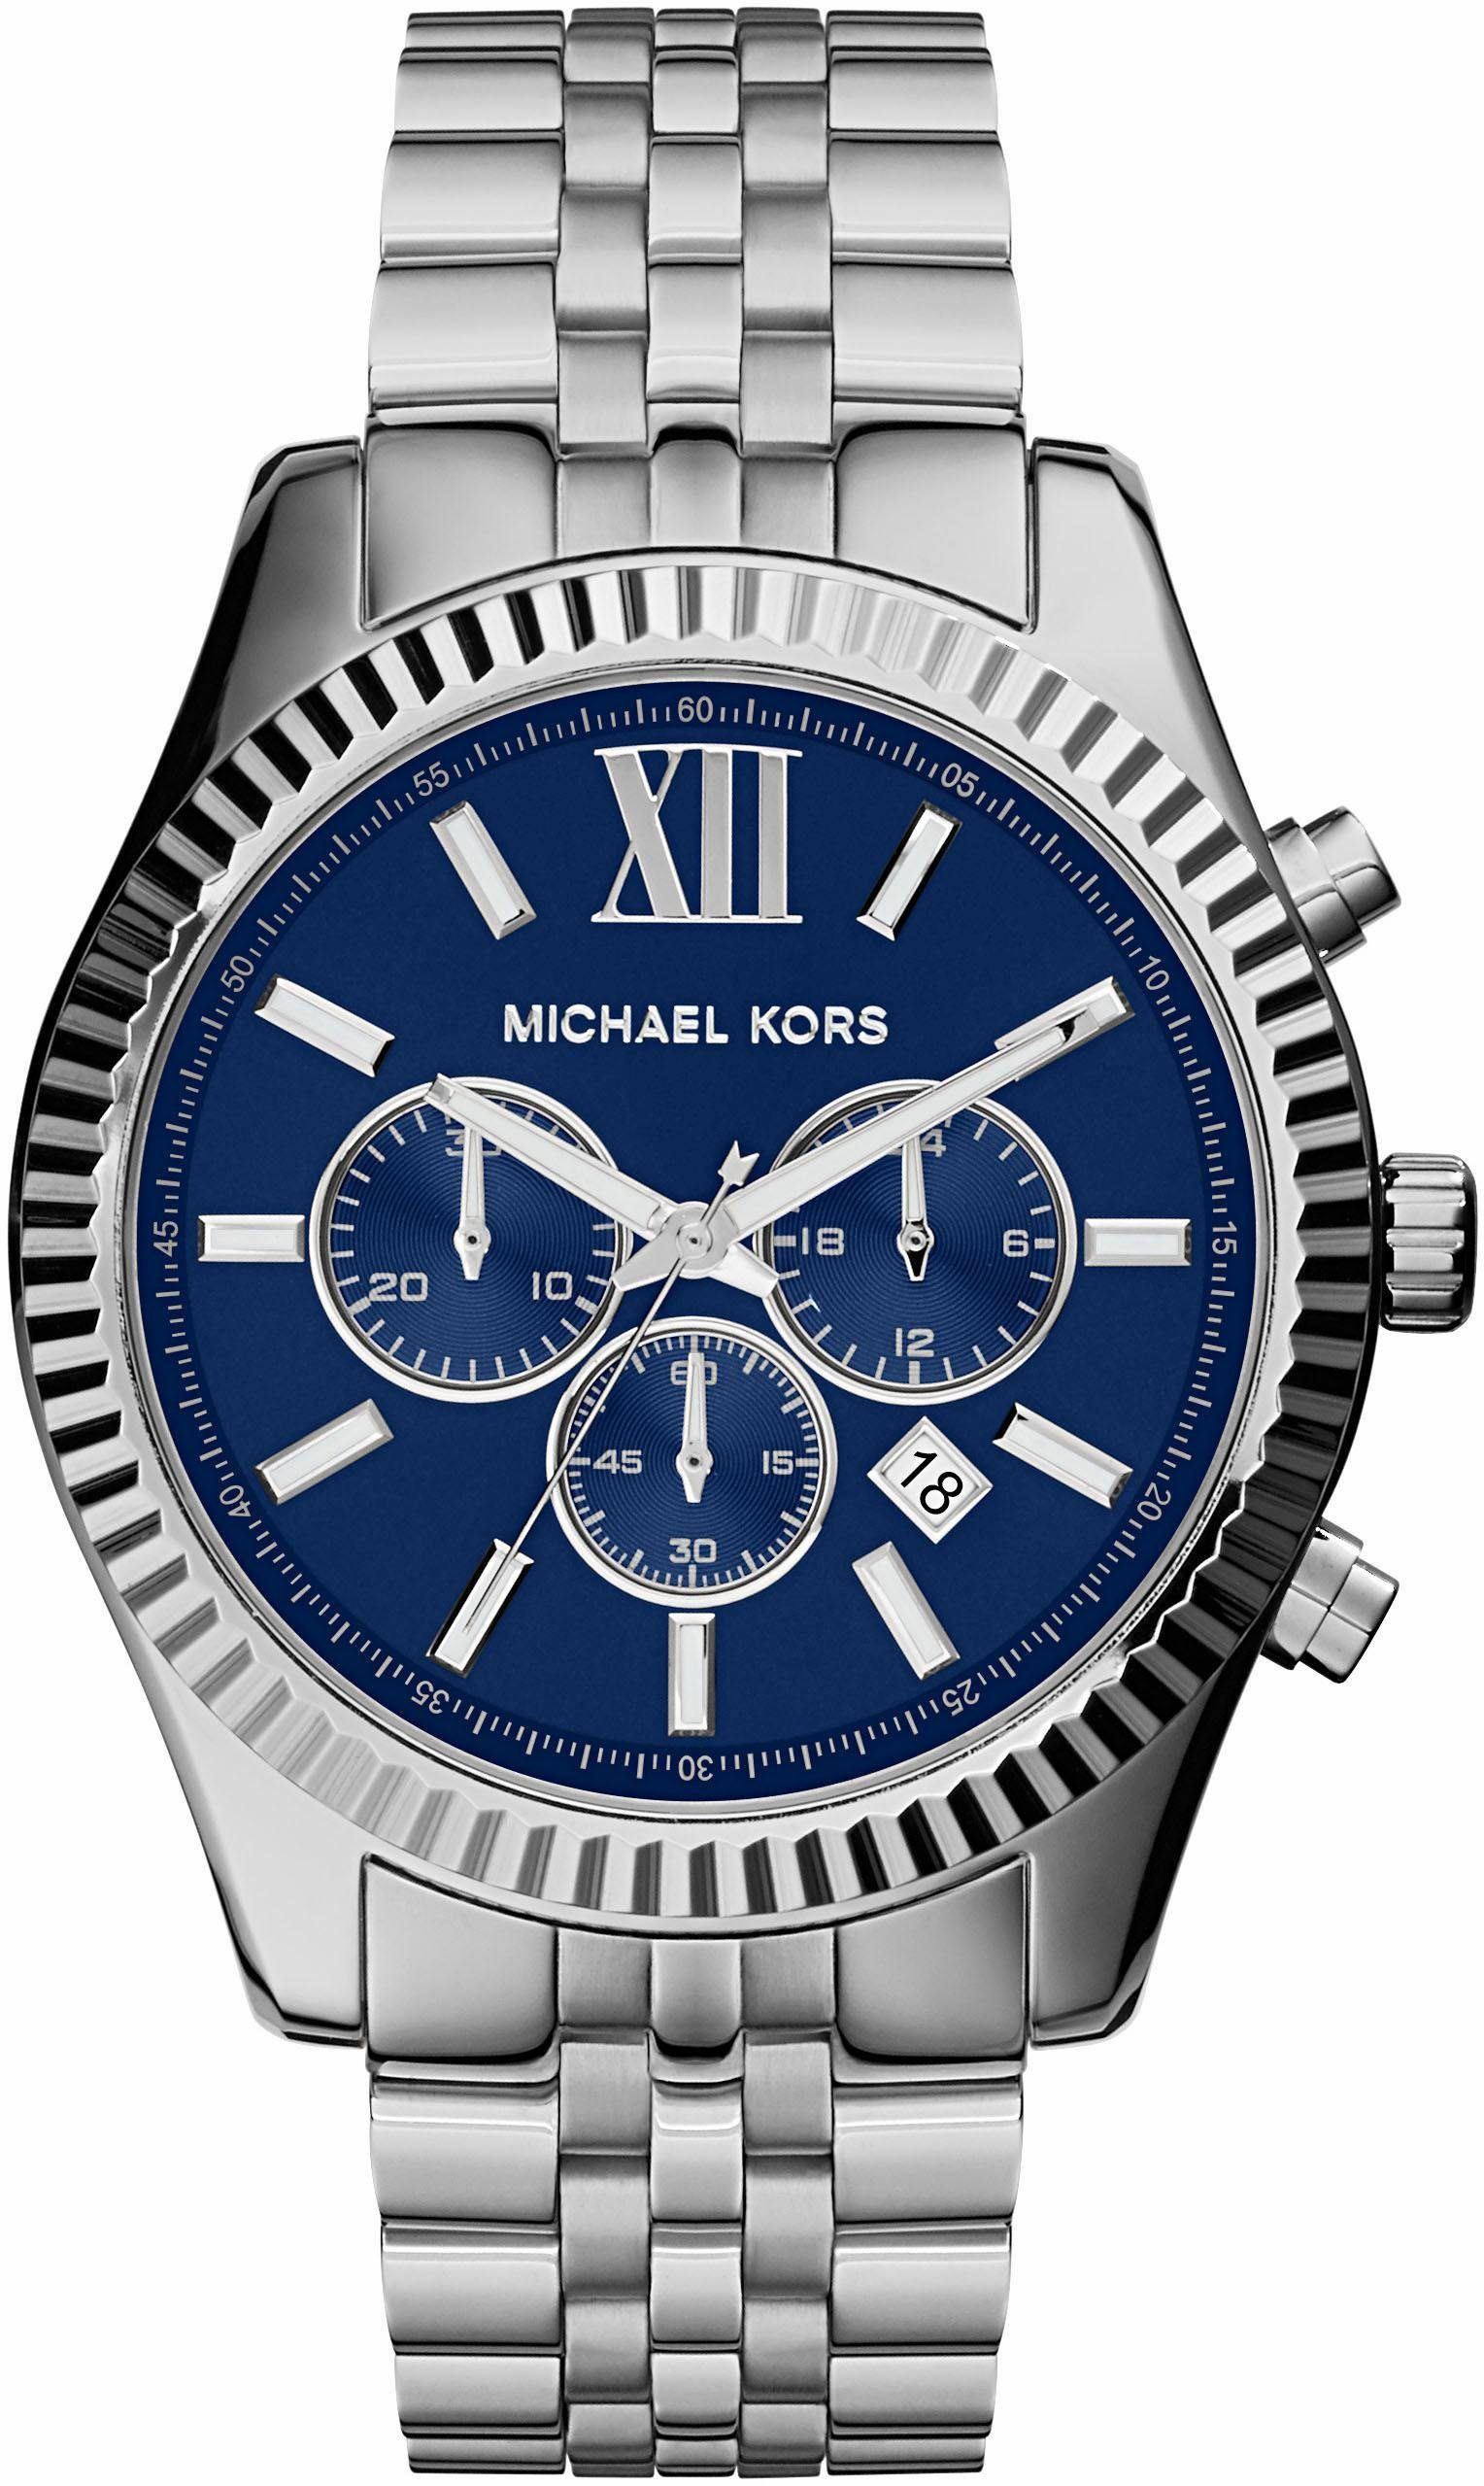 MICHAEL KORS Chronograph »LEXINGTON, MK8280«